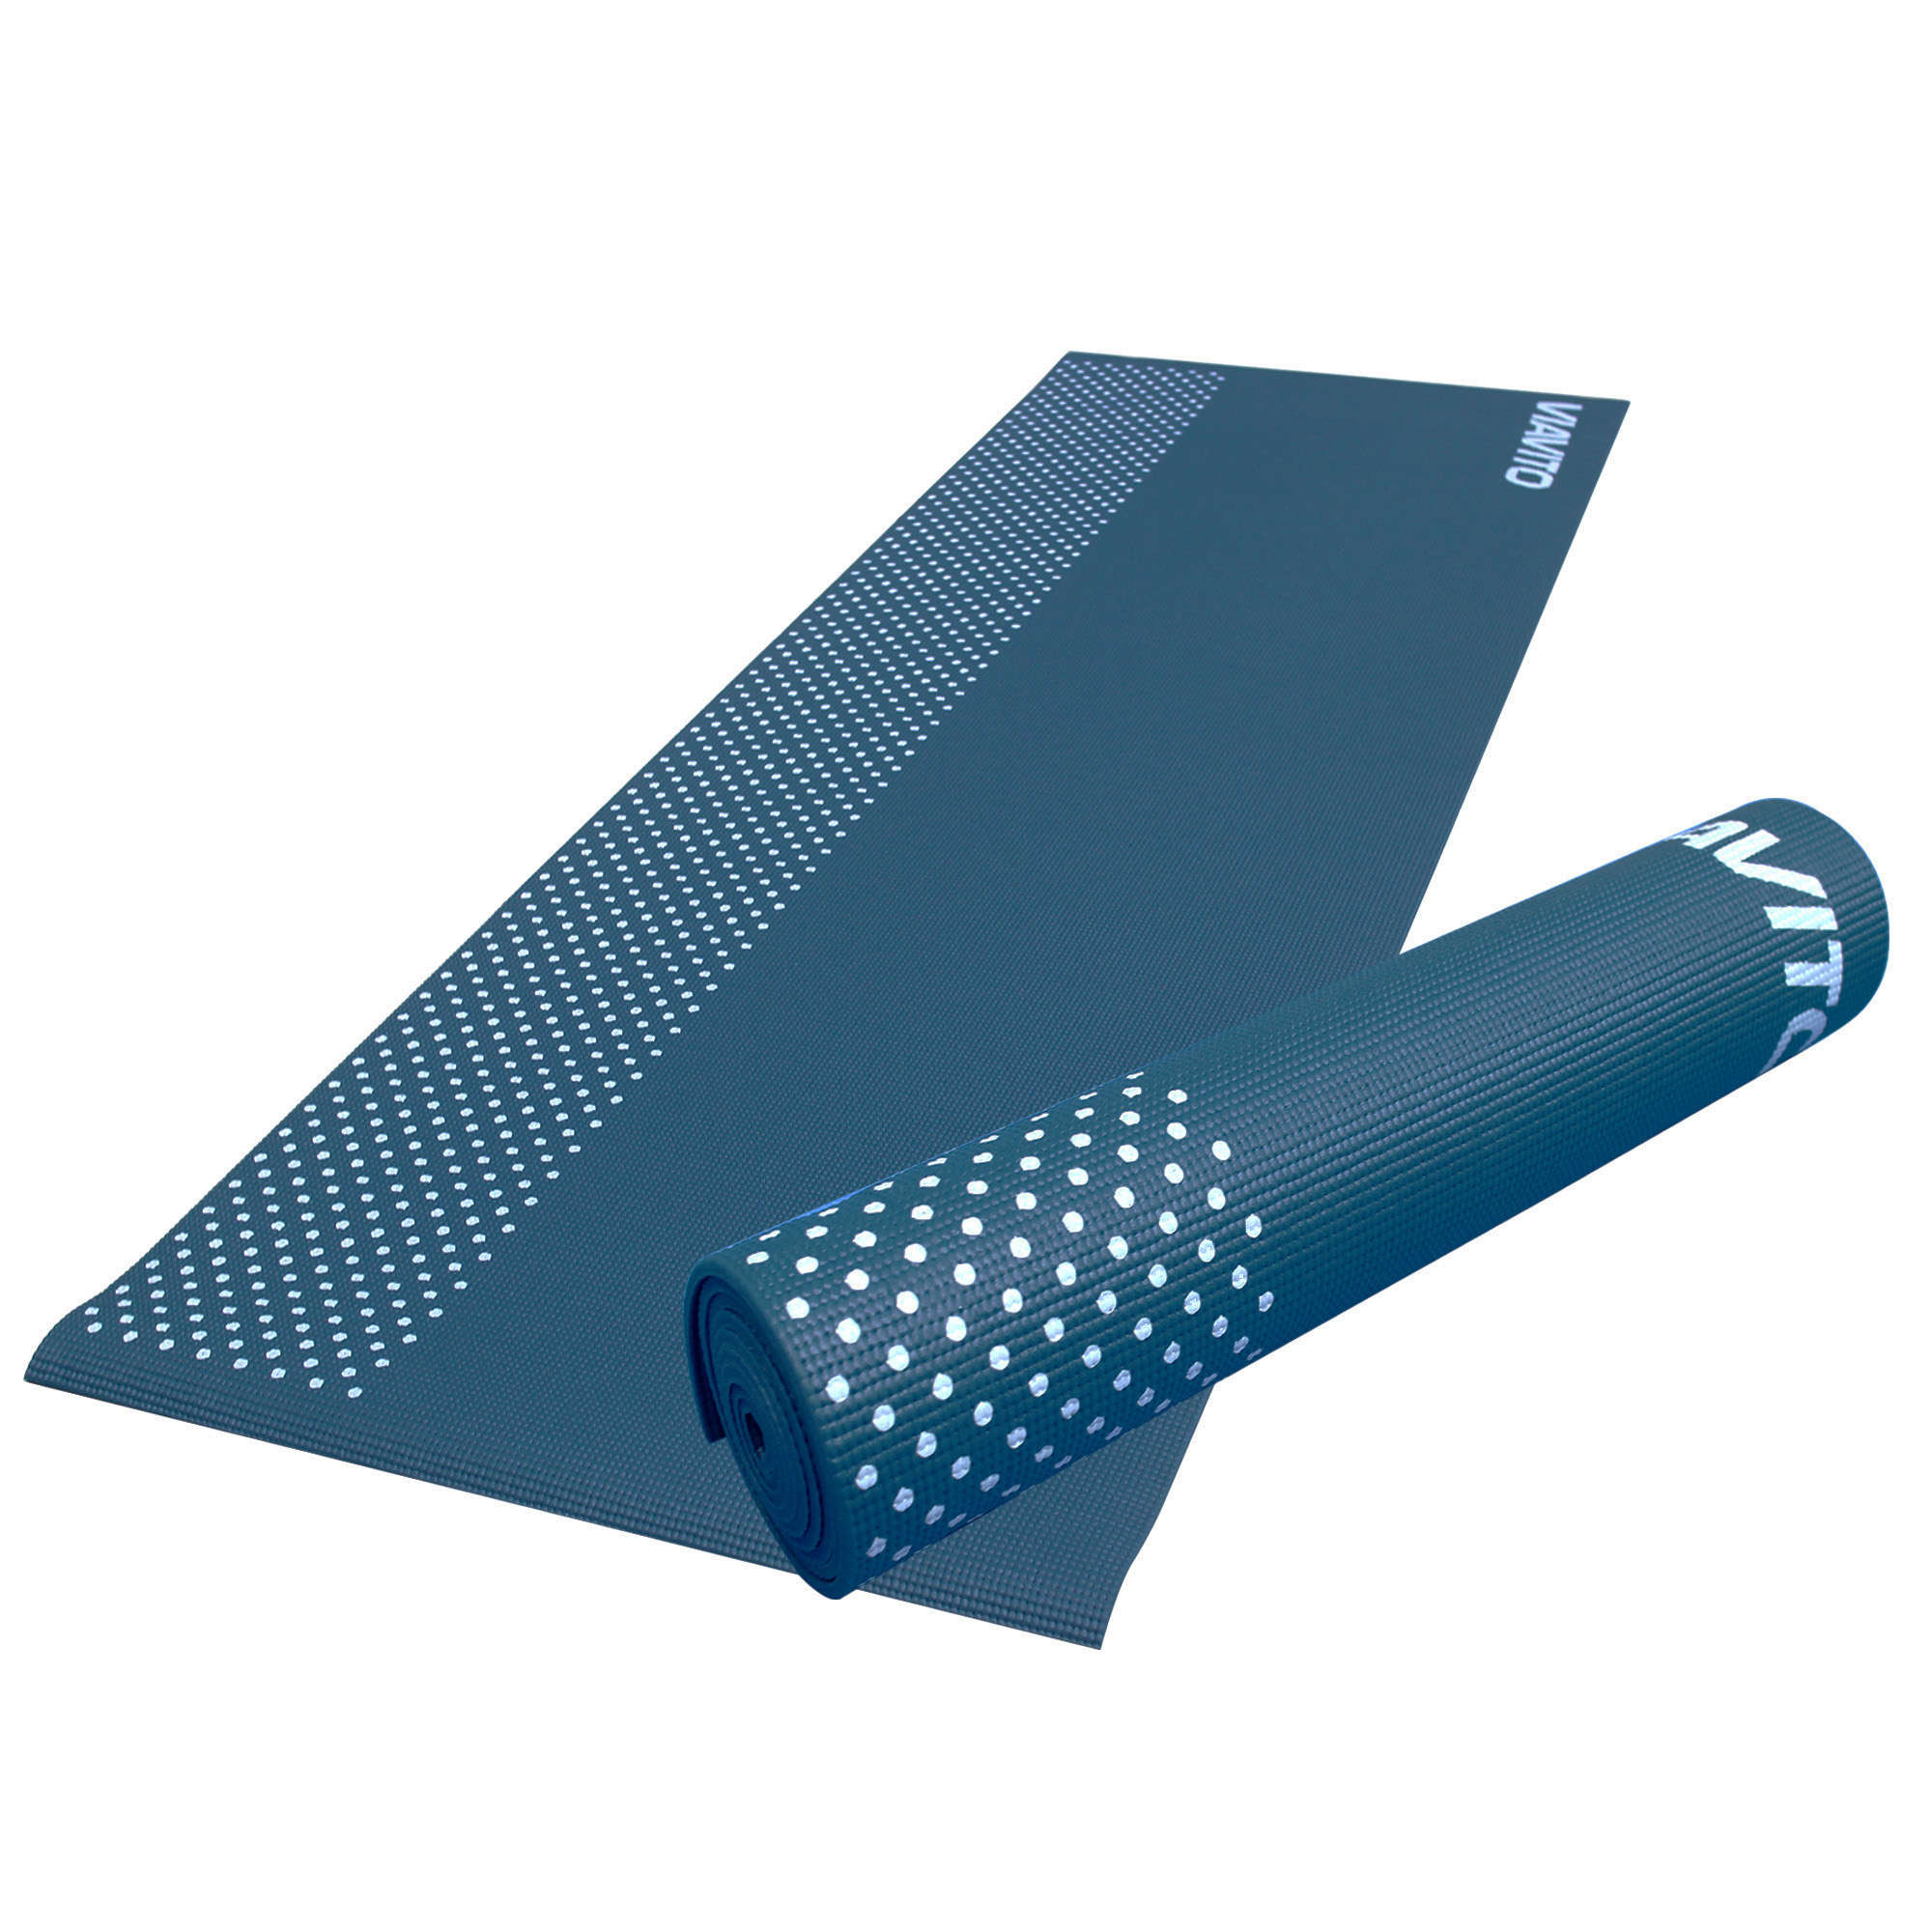 Viavito Leviato 6mm Yoga Mat with Carry Strap - Distant Blue